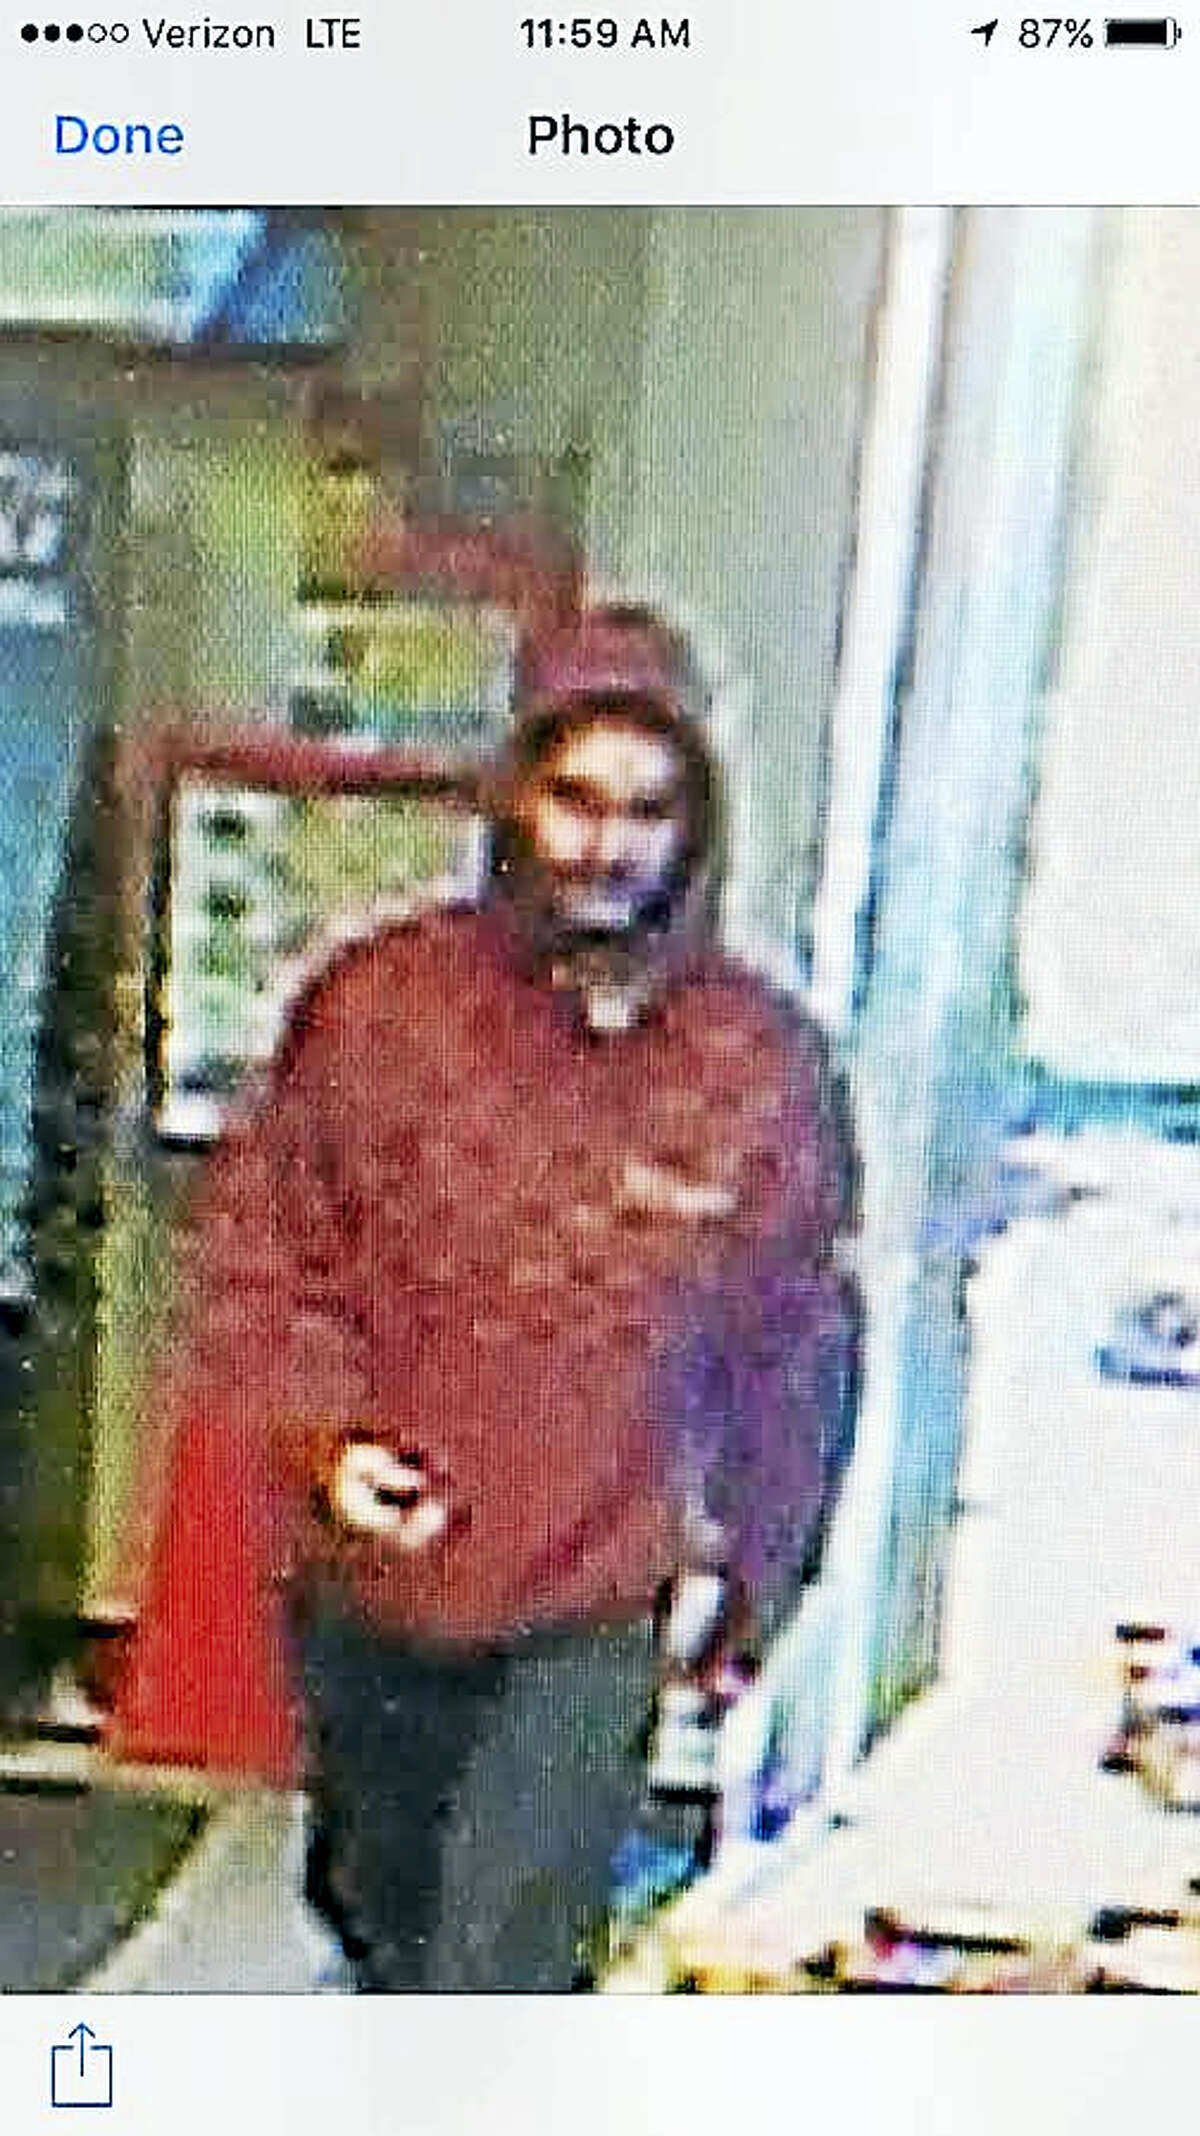 Matthew Small was charged with two robberies in Seymour after police posted these surveillance pictures on Facebook